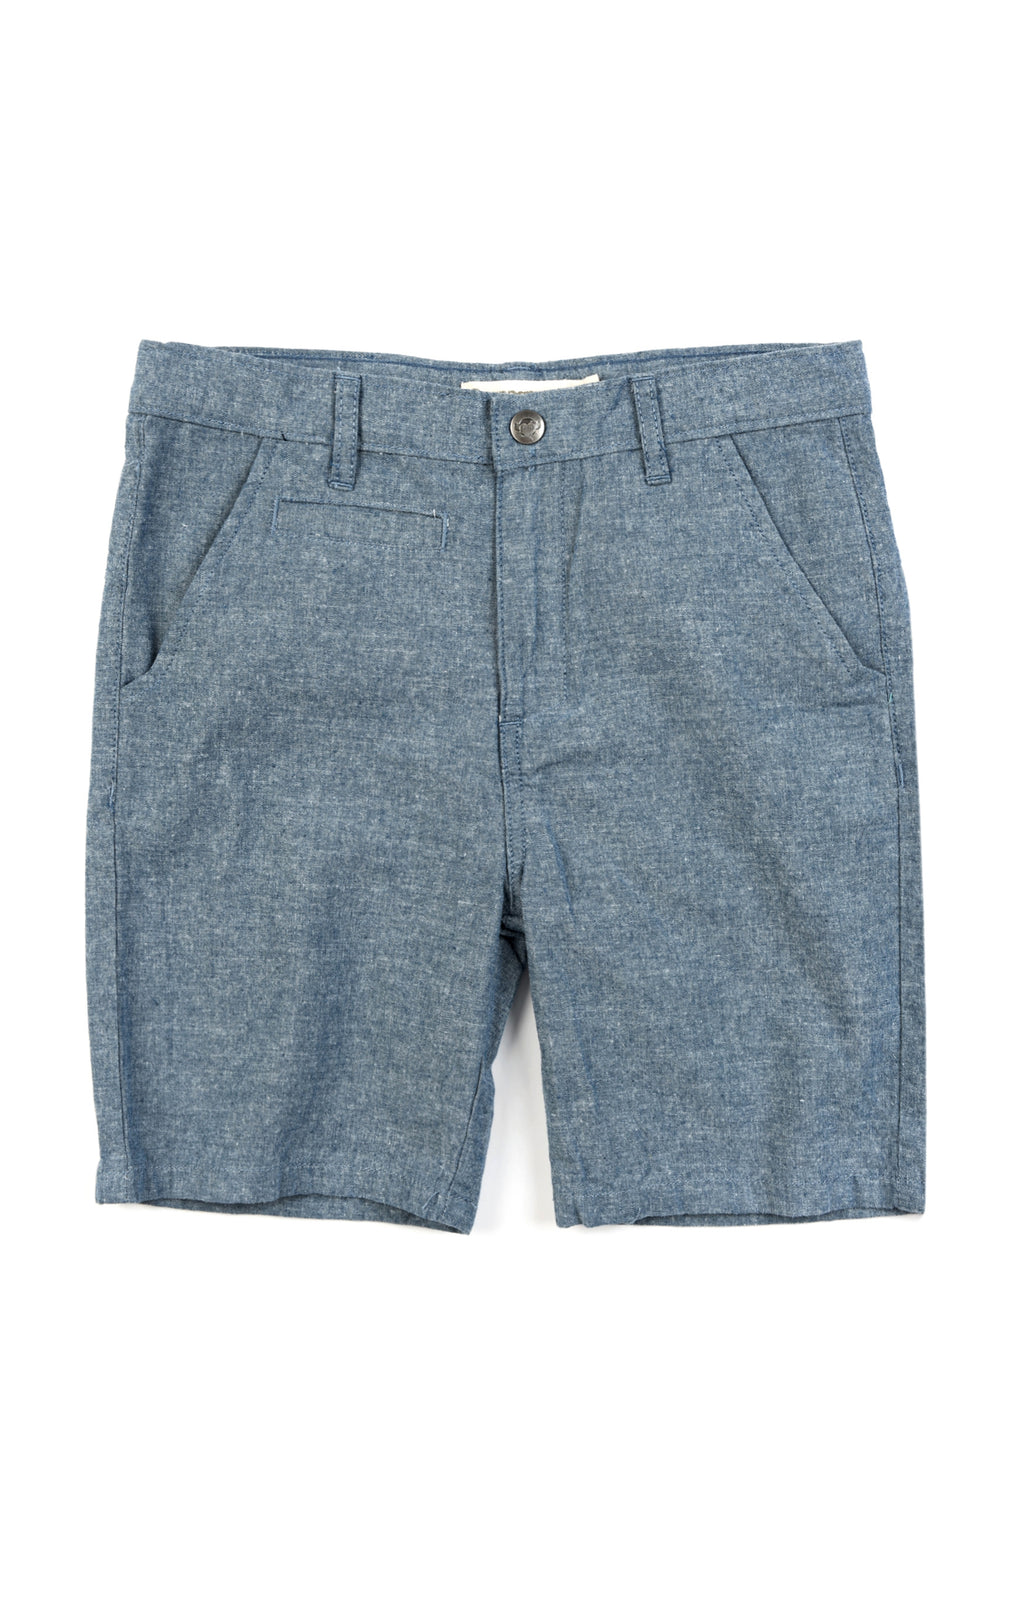 Appaman Dockside Shorts - Moonlight Blue